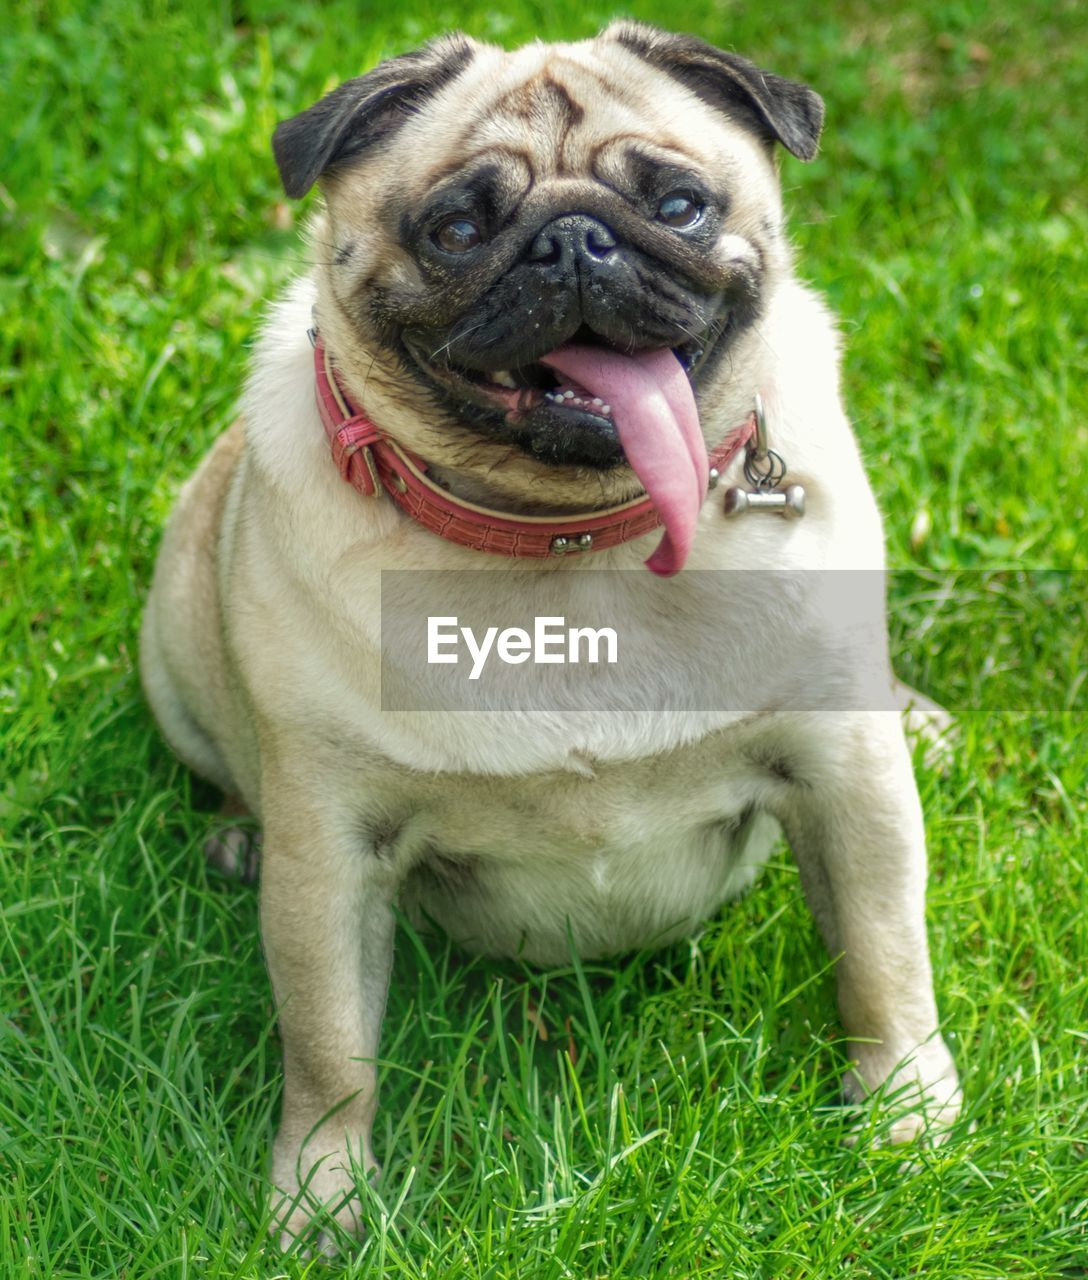 one animal, animal, animal themes, mammal, domestic animals, domestic, grass, pets, canine, dog, pug, plant, lap dog, portrait, vertebrate, field, nature, small, no people, land, animal tongue, panting, mouth open